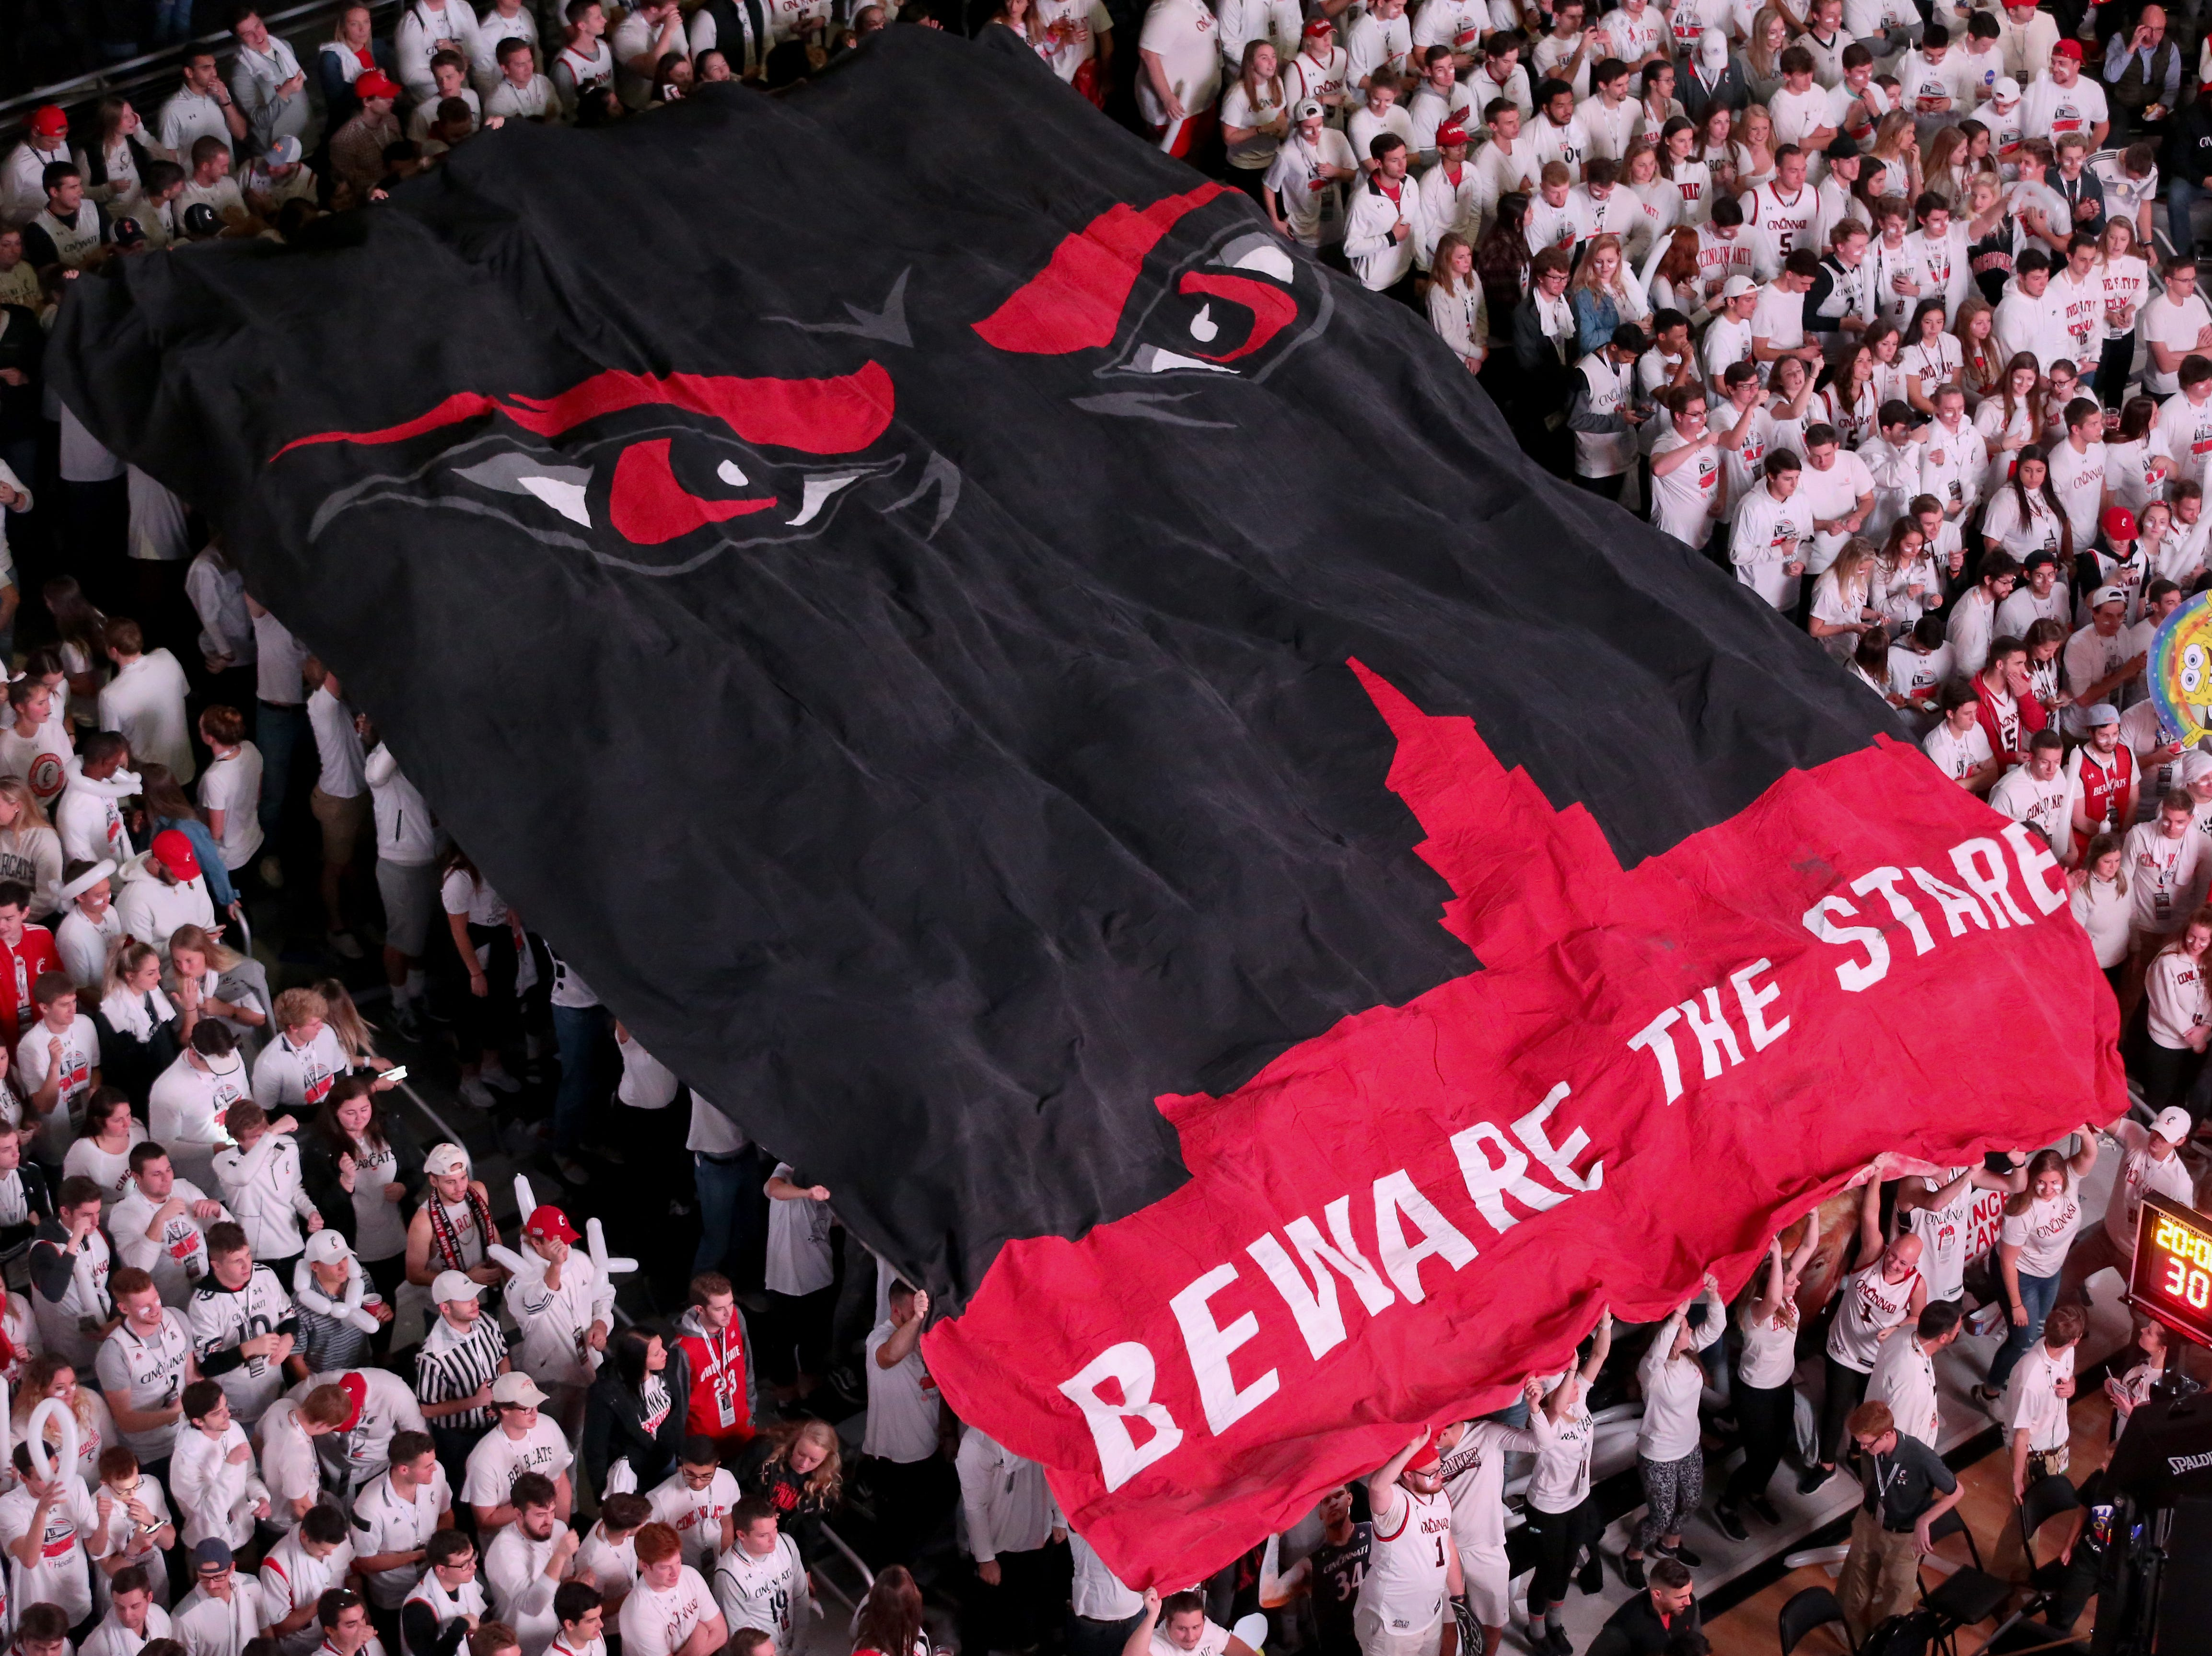 The Cincinnati Bearcats student section unfurls a flag before a college basketball game between the Ohio State Buckeyes and the Cincinnati Bearcats, Wednesday, Nov. 7, 2018, at Fifth Third Arena in Cincinnati.